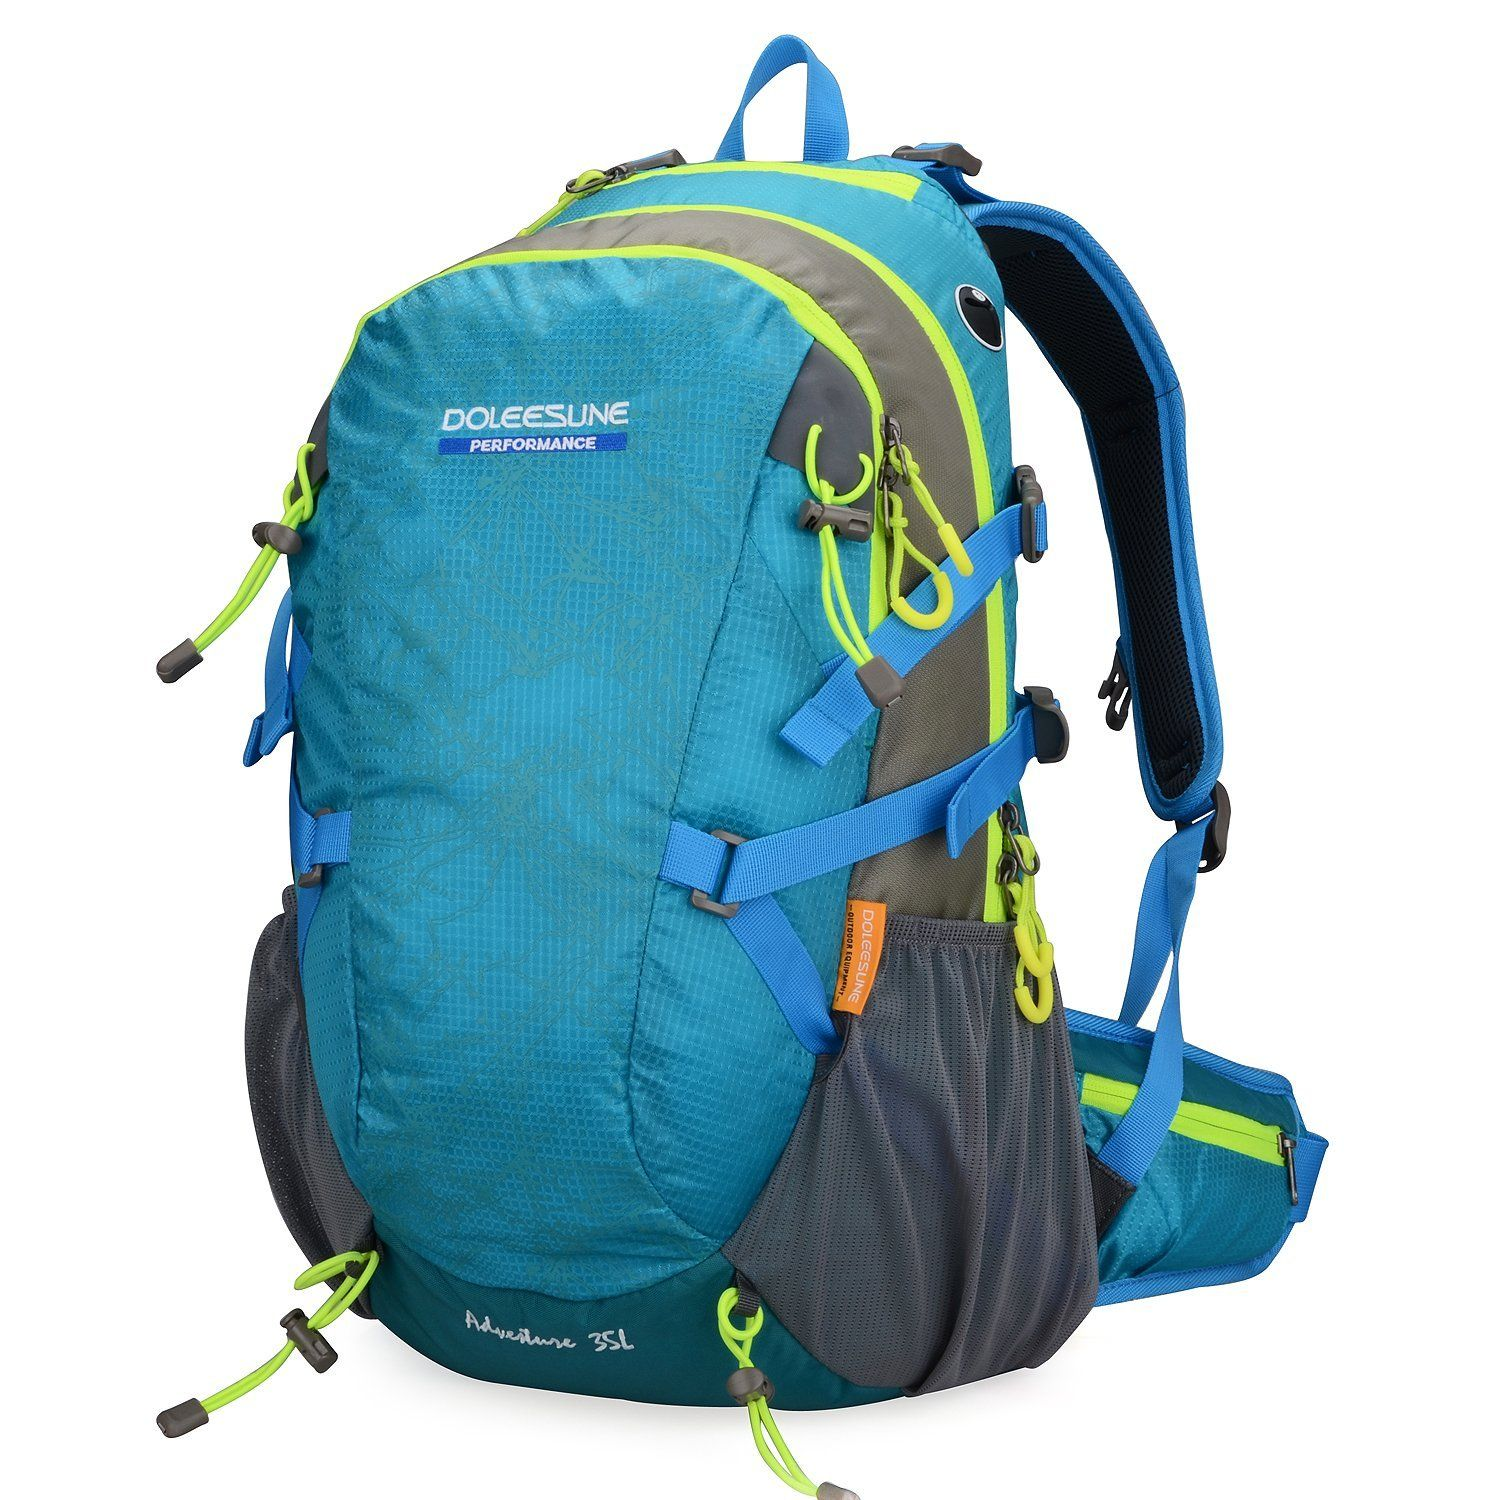 Doleesune Outdoor Hiking Daypacks Climbing Cycling Backpack Hiking Backpacking Packs Waterproof Mountaineering Bag 35l 8103 * Additional details at the pin image, click it  : backpacking packs